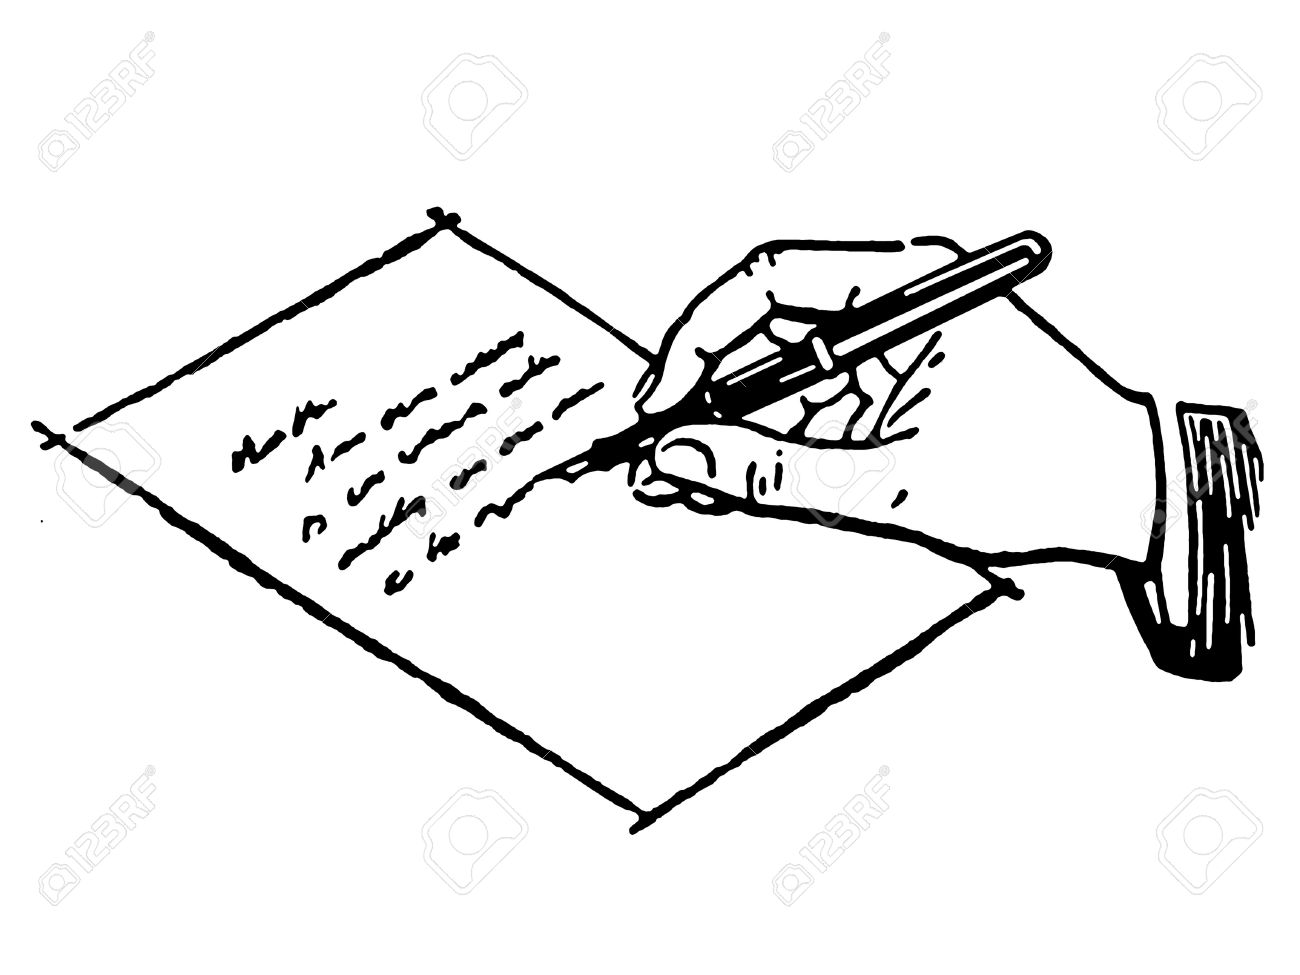 A Black And White Version Of Drawing Hand Writing Letter Stock Photo